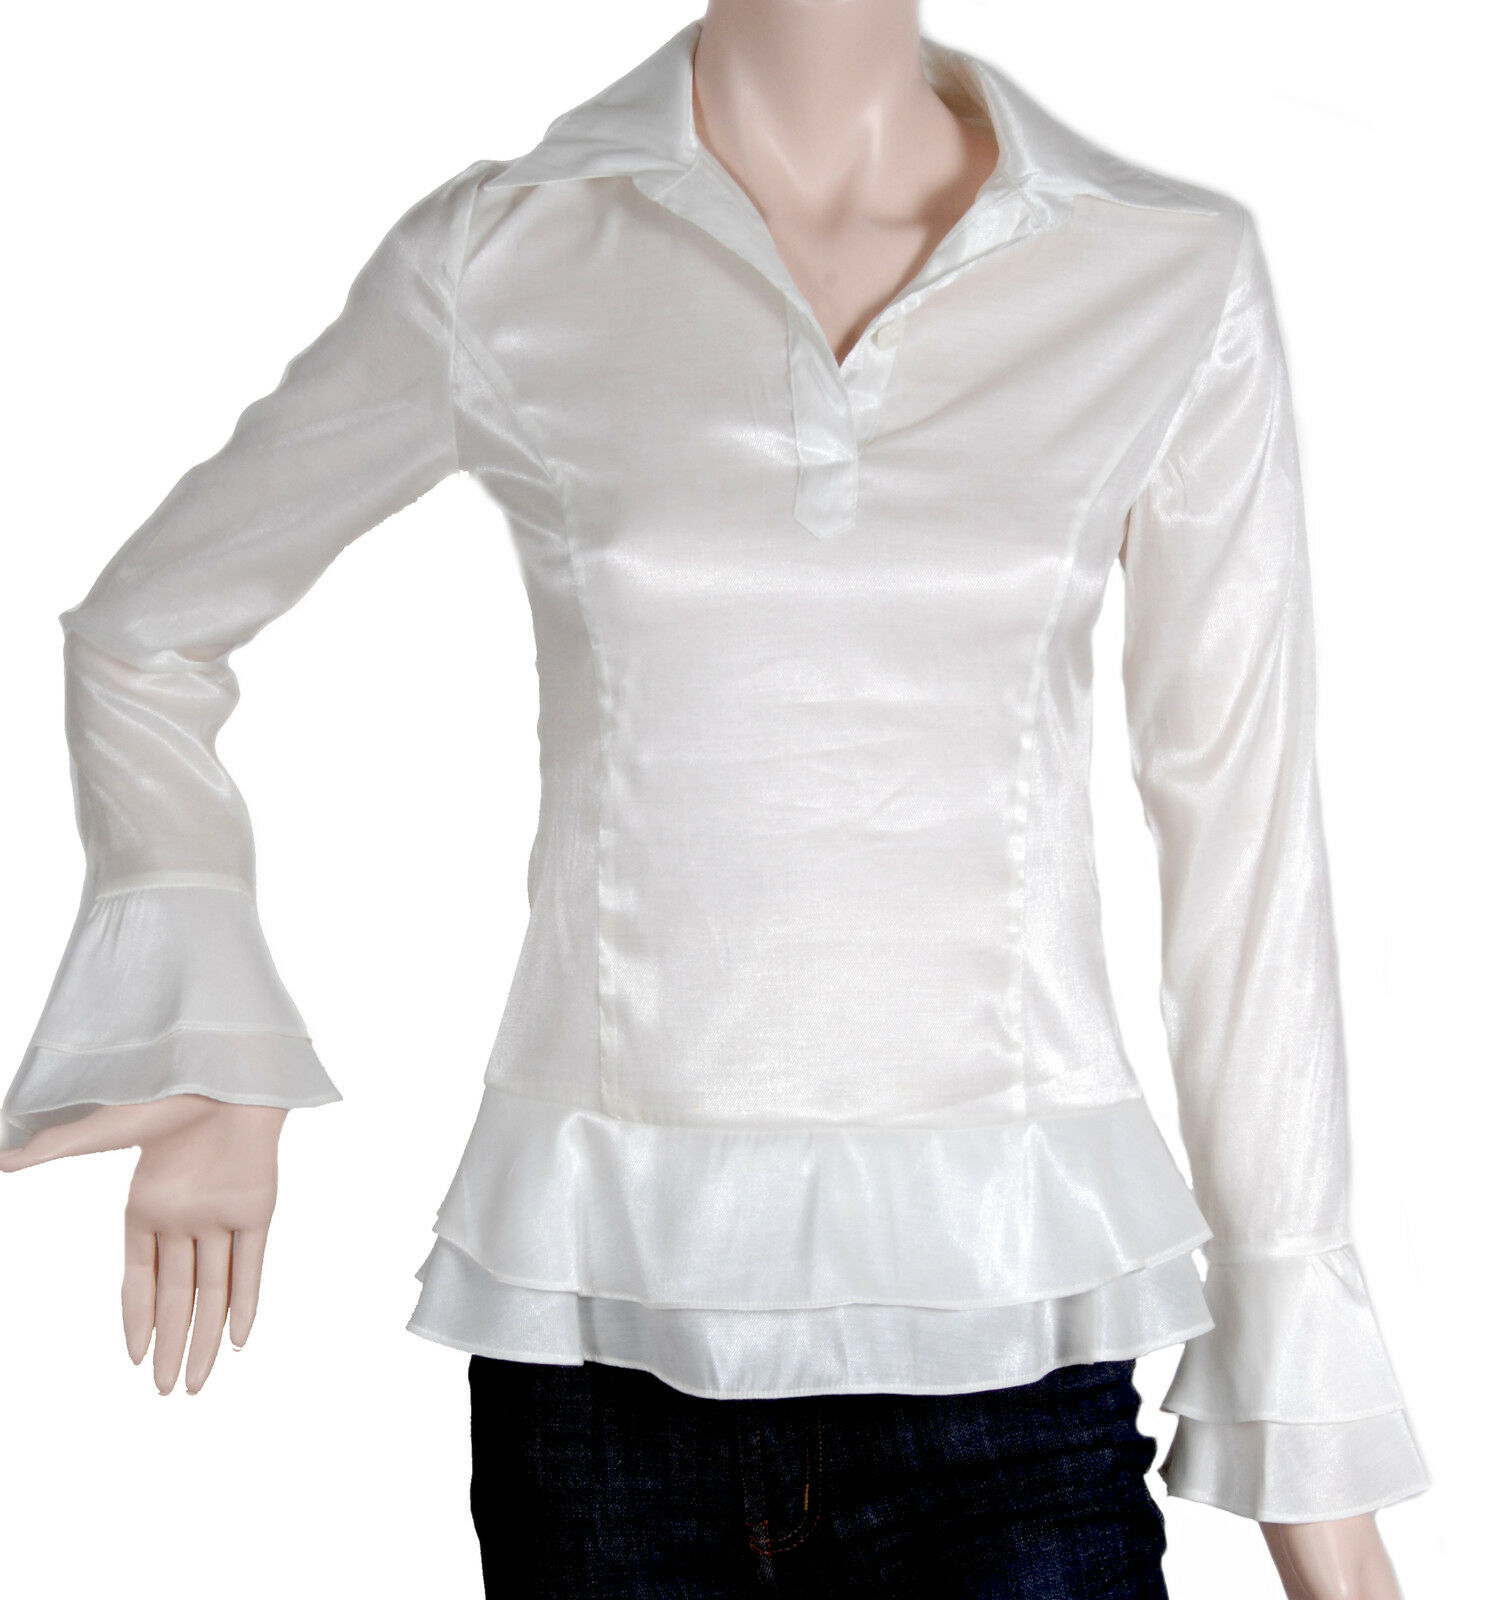 L Größe Weiß Shirt For City Professional  -  French Elegat Style CH001